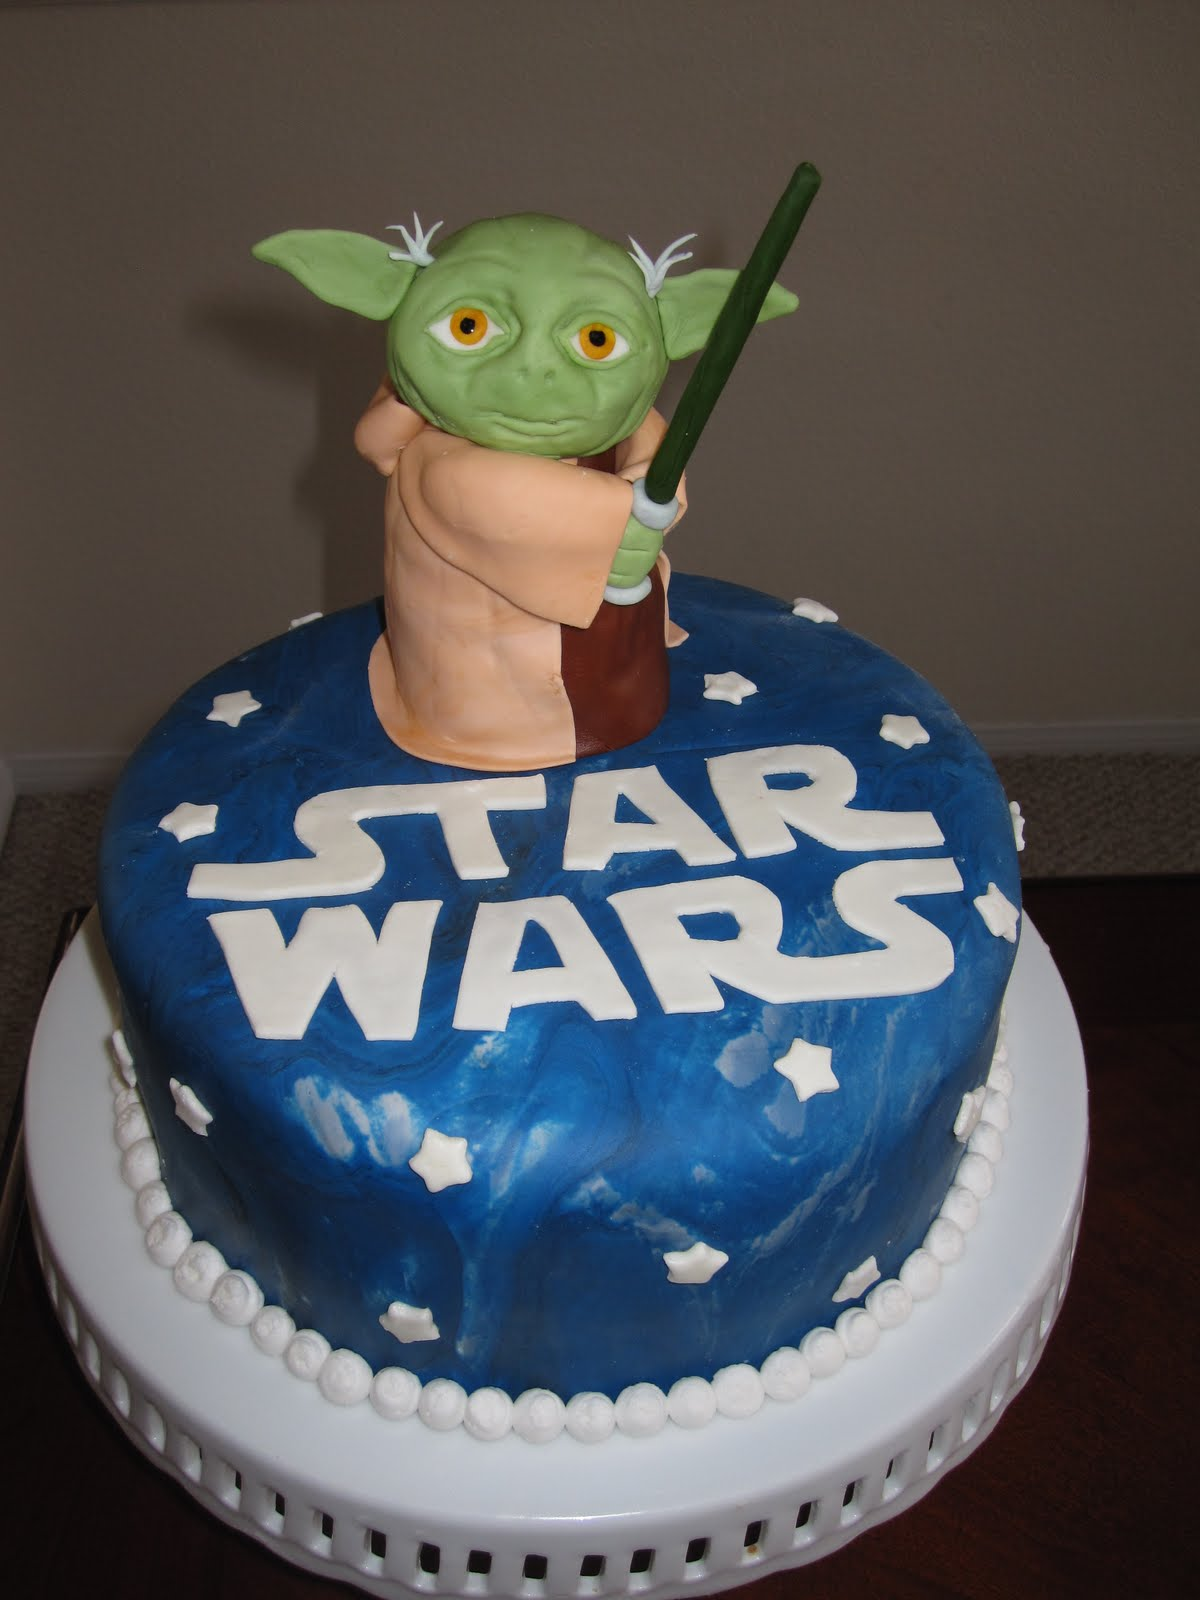 Remarkable Star Wars Cakes Decoration Ideas Little Birthday Cakes Funny Birthday Cards Online Overcheapnameinfo